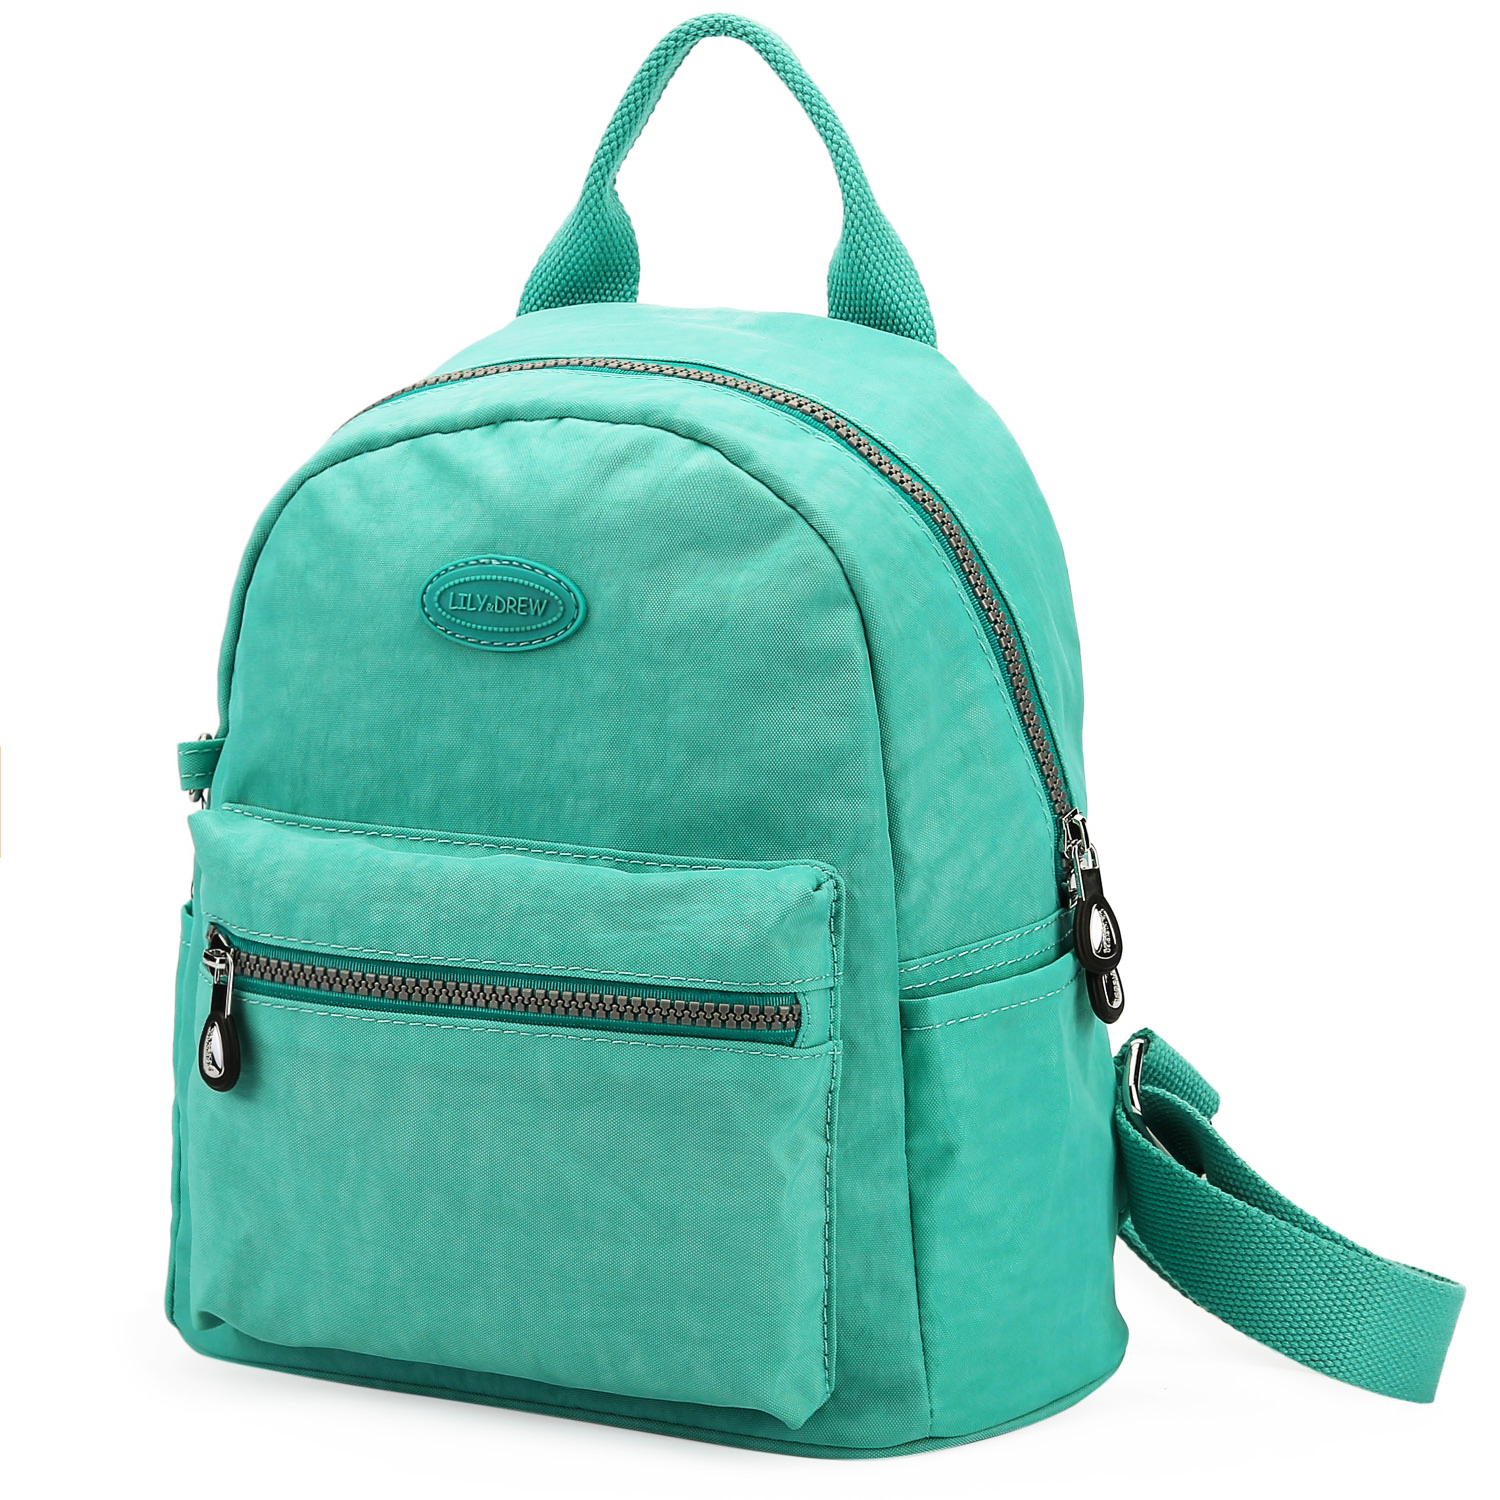 most popular cheapest sale exceptional range of styles and colors Lily & Drew Nylon Mini Casual Travel Daypack Backpack Purse (Mint Green) -  Lily and Drew